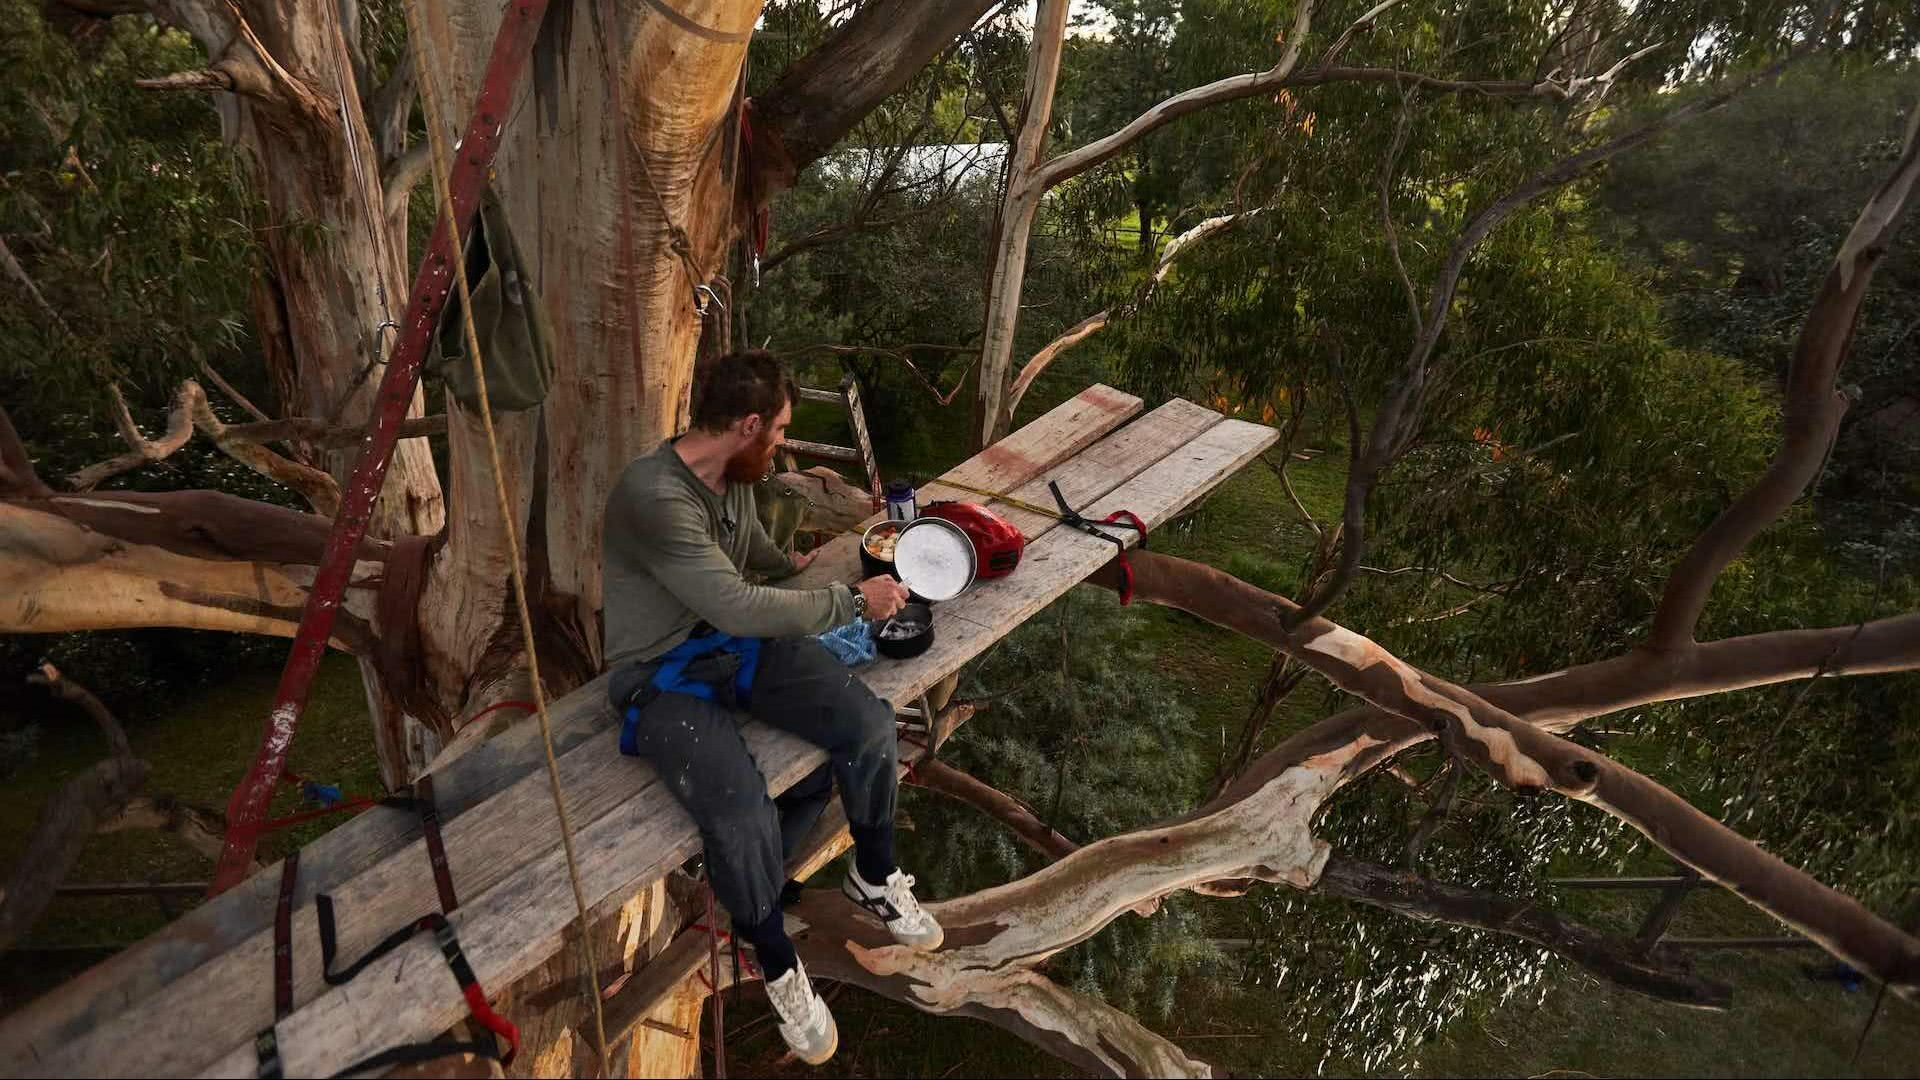 Podcast Episode 8: Beau Miles on Sleeping Up a Gum Tree in His Own Backyard, Pat Corden, We Are Explorers Podcast, tree, dinner, camping, climbing